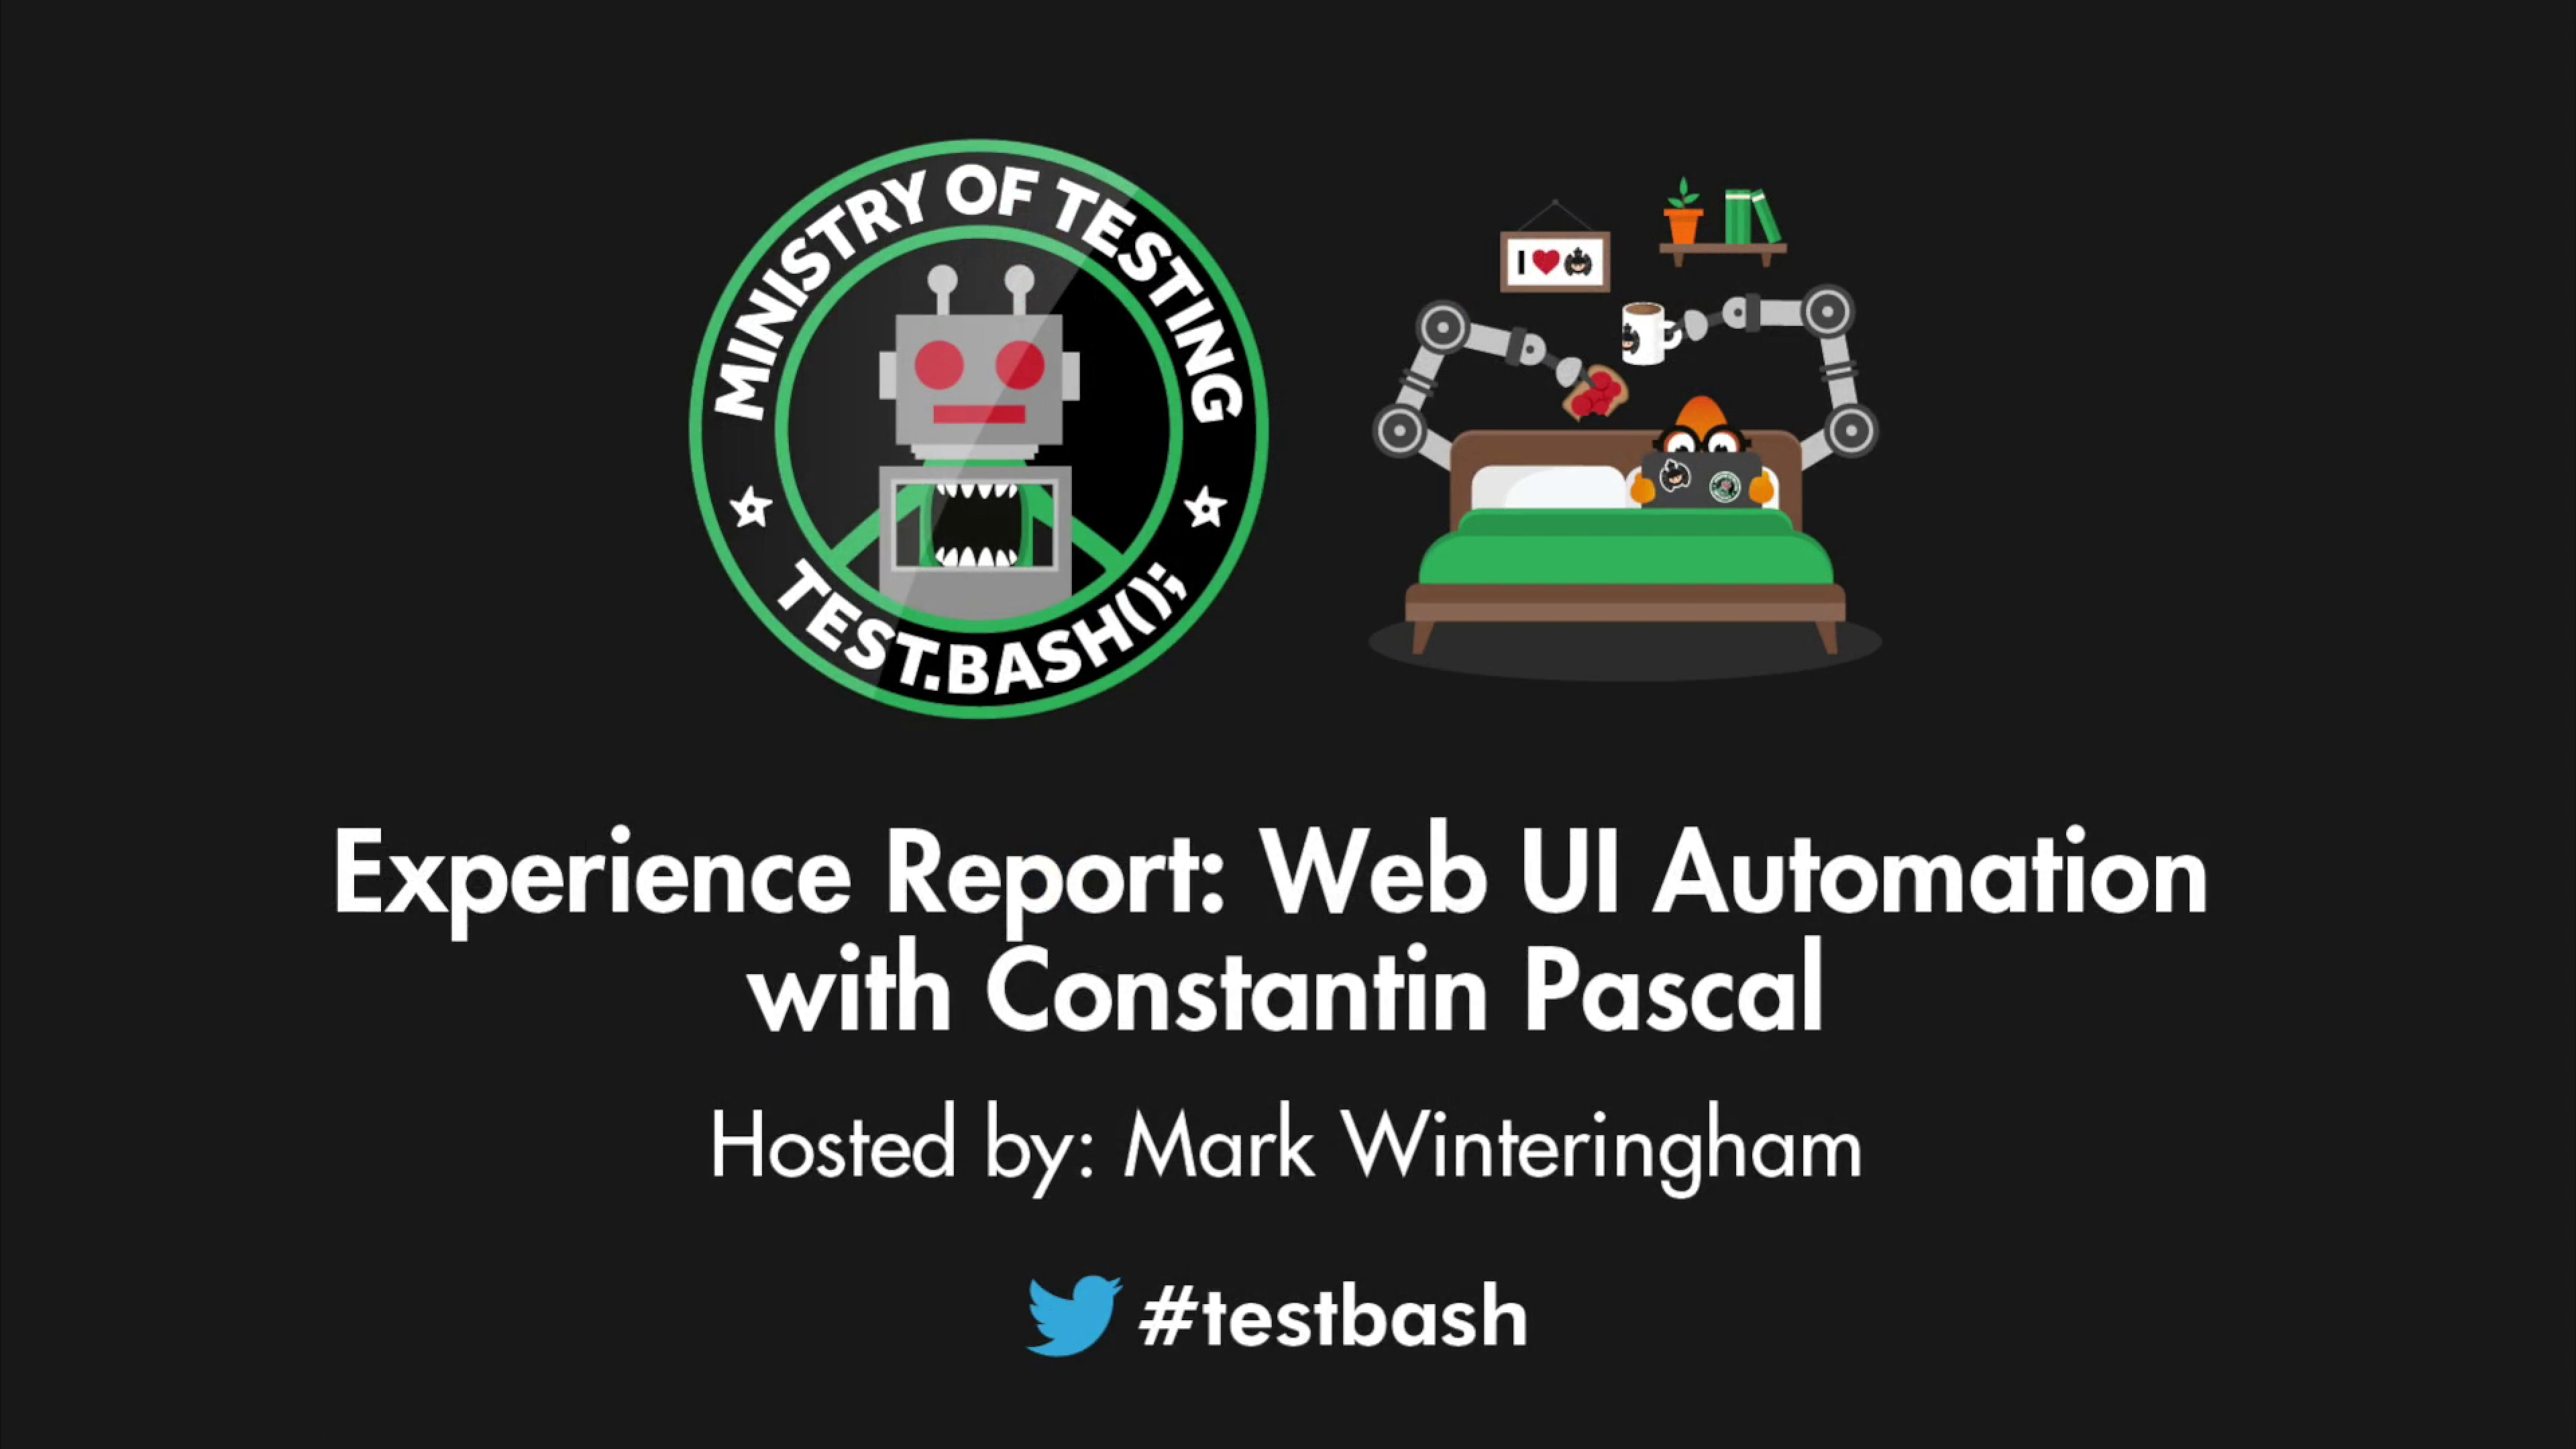 Experience Report: Web UI Automation - Constantin Pascal